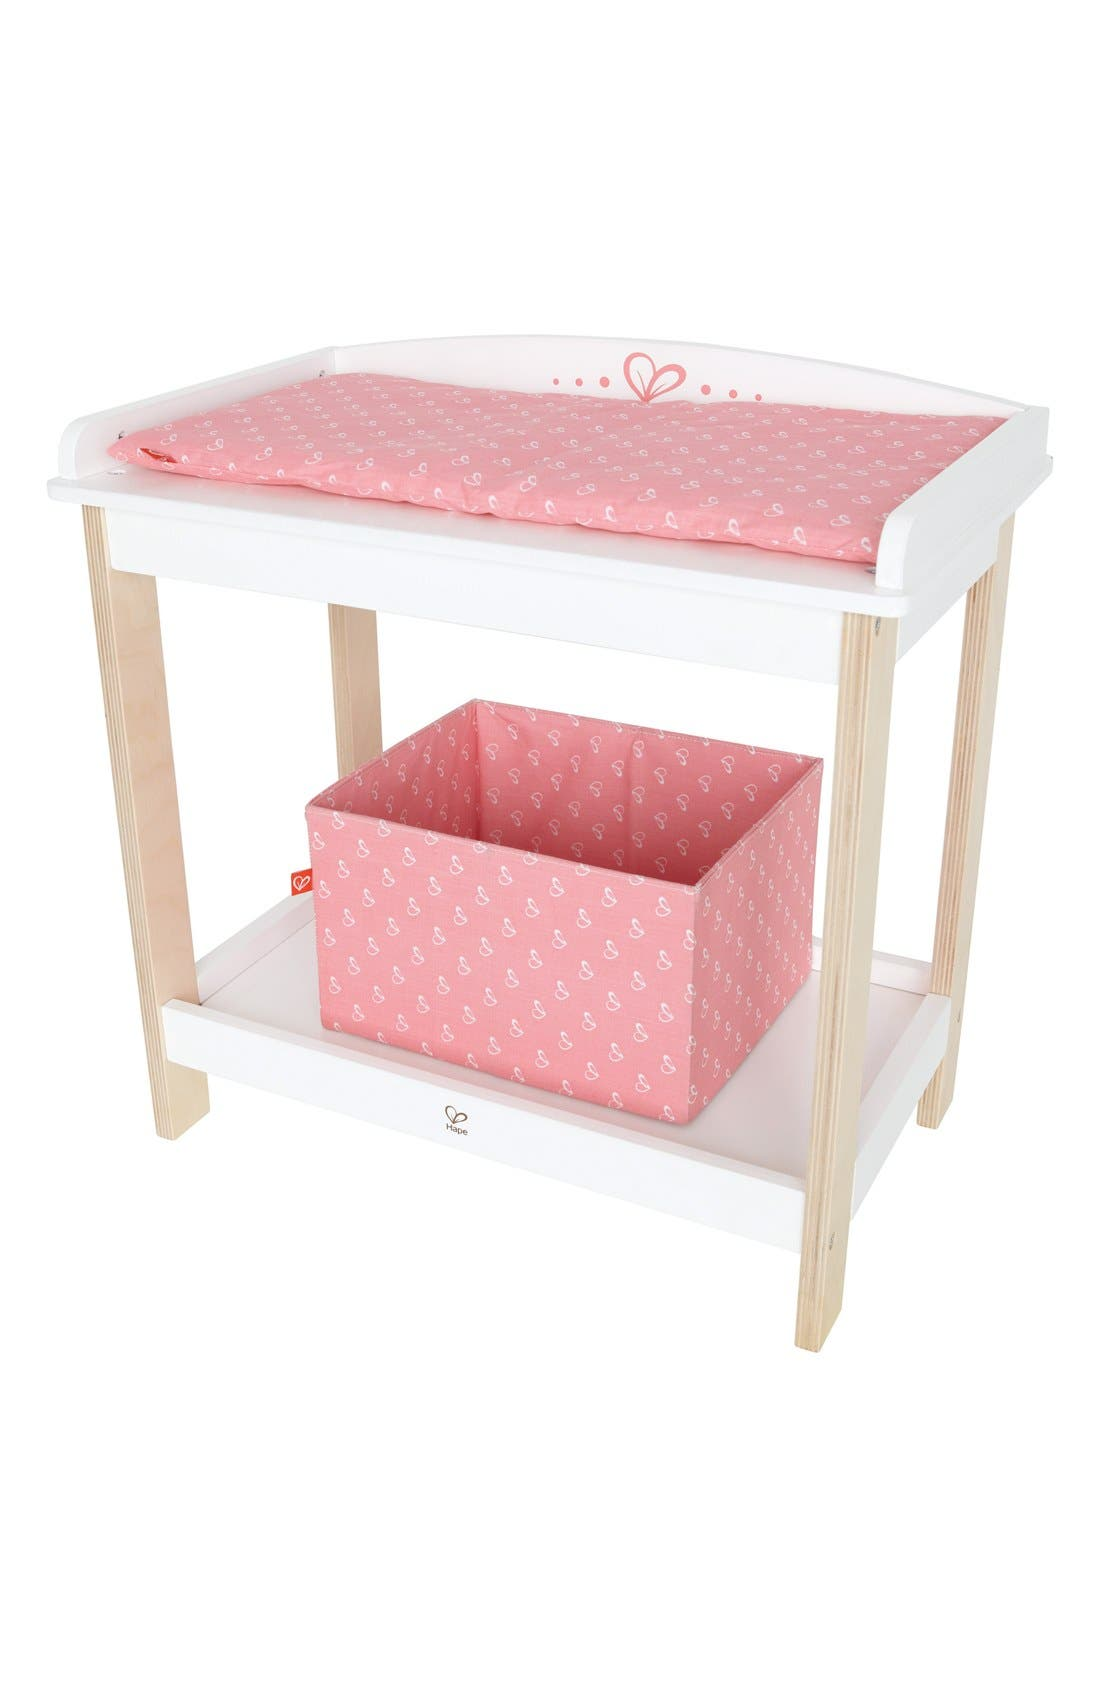 Alternate Image 1 Selected - Hape Toy Changing Table